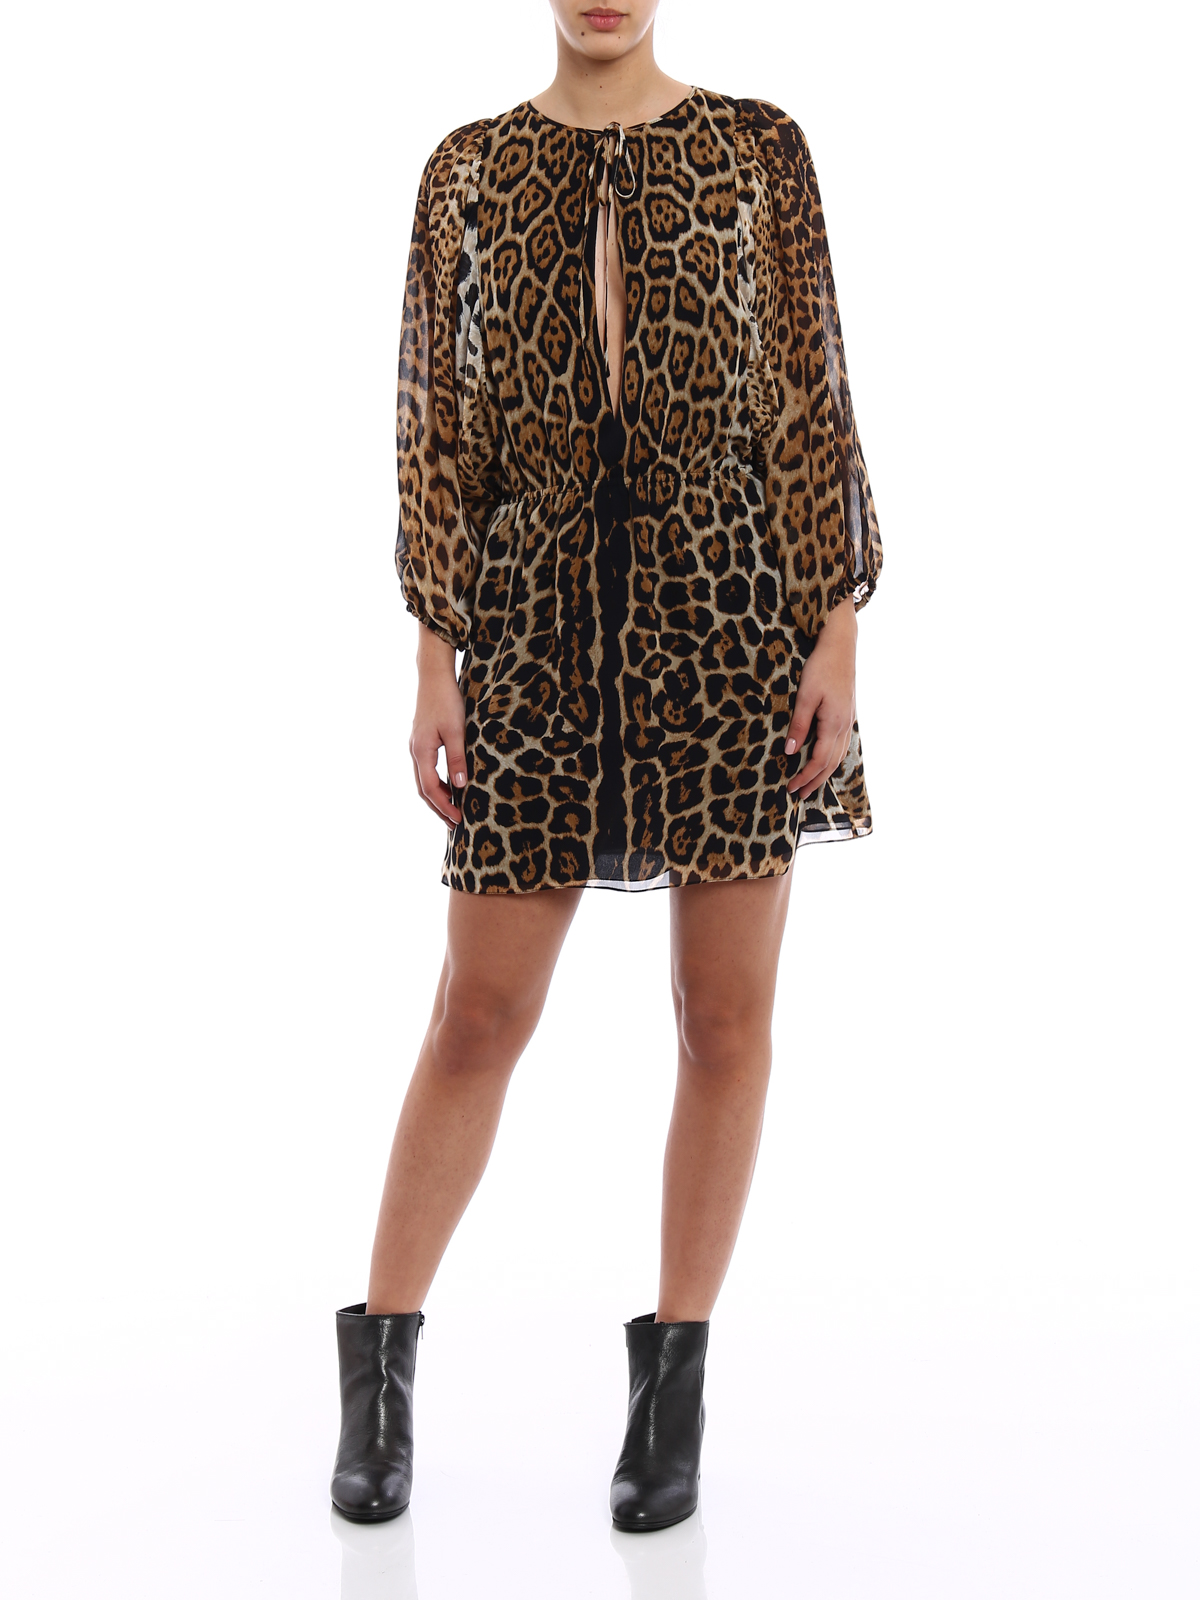 Leopard print clothing online